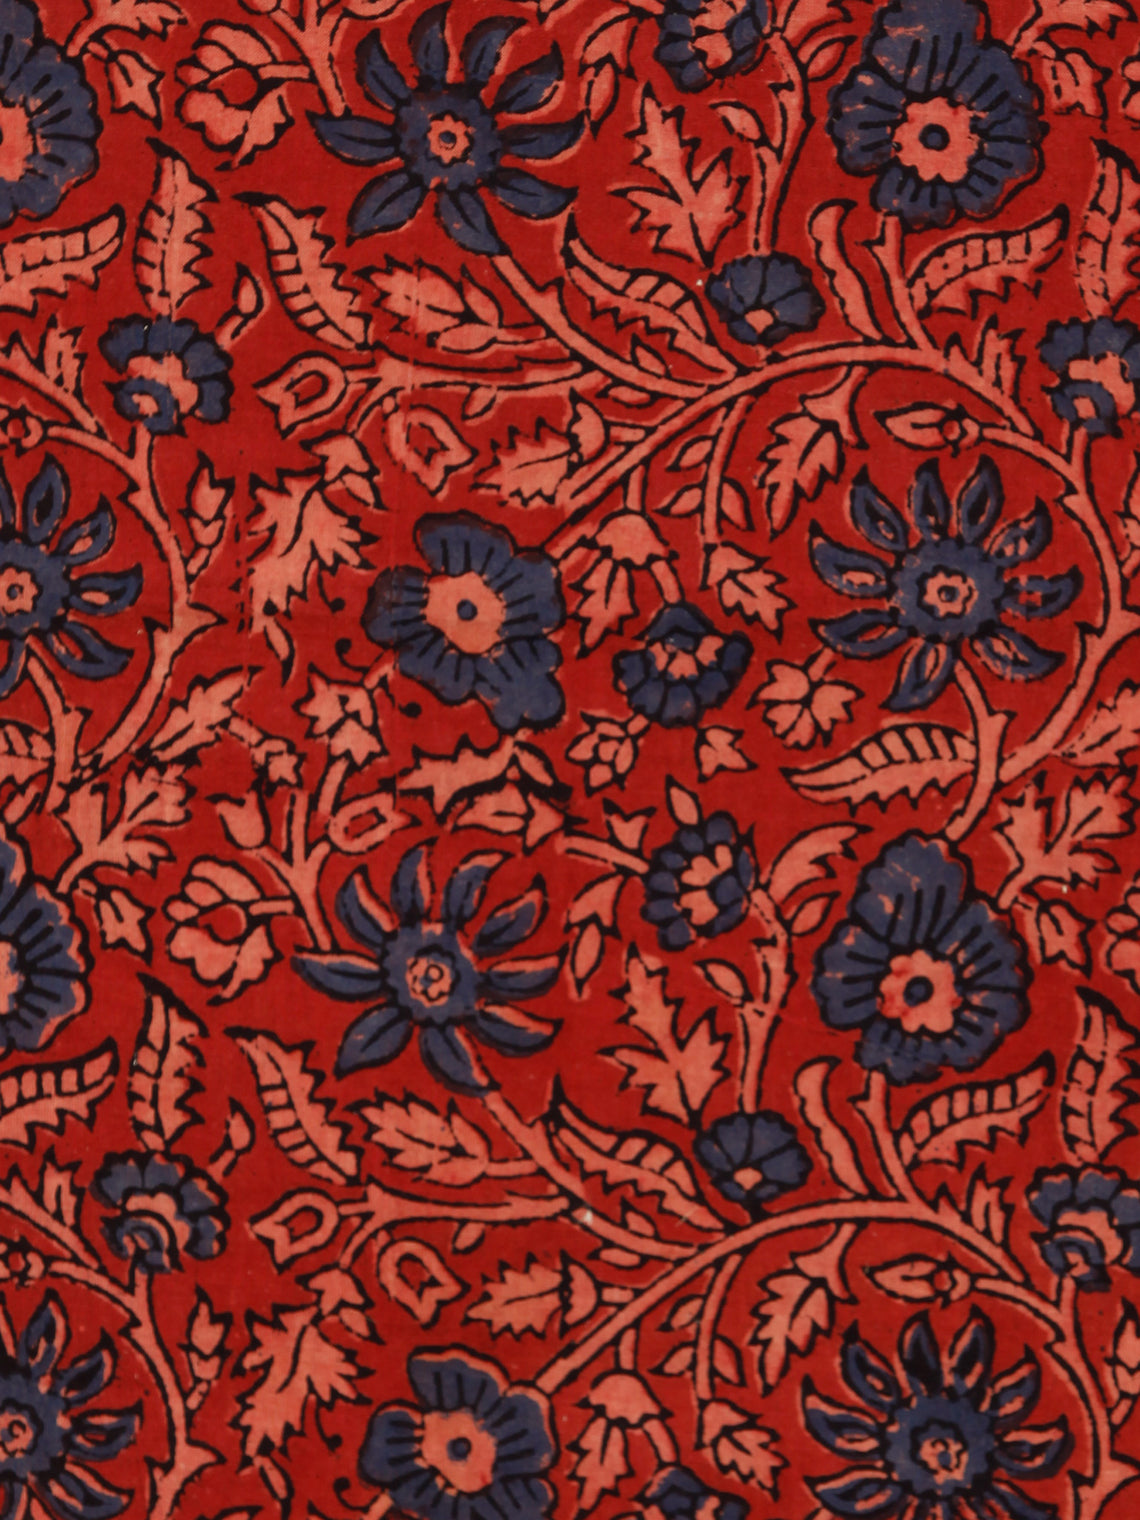 Red Indigo Black Beige Ajrakh Hand Block Printed Cotton Fabric Per Meter - F003F1773